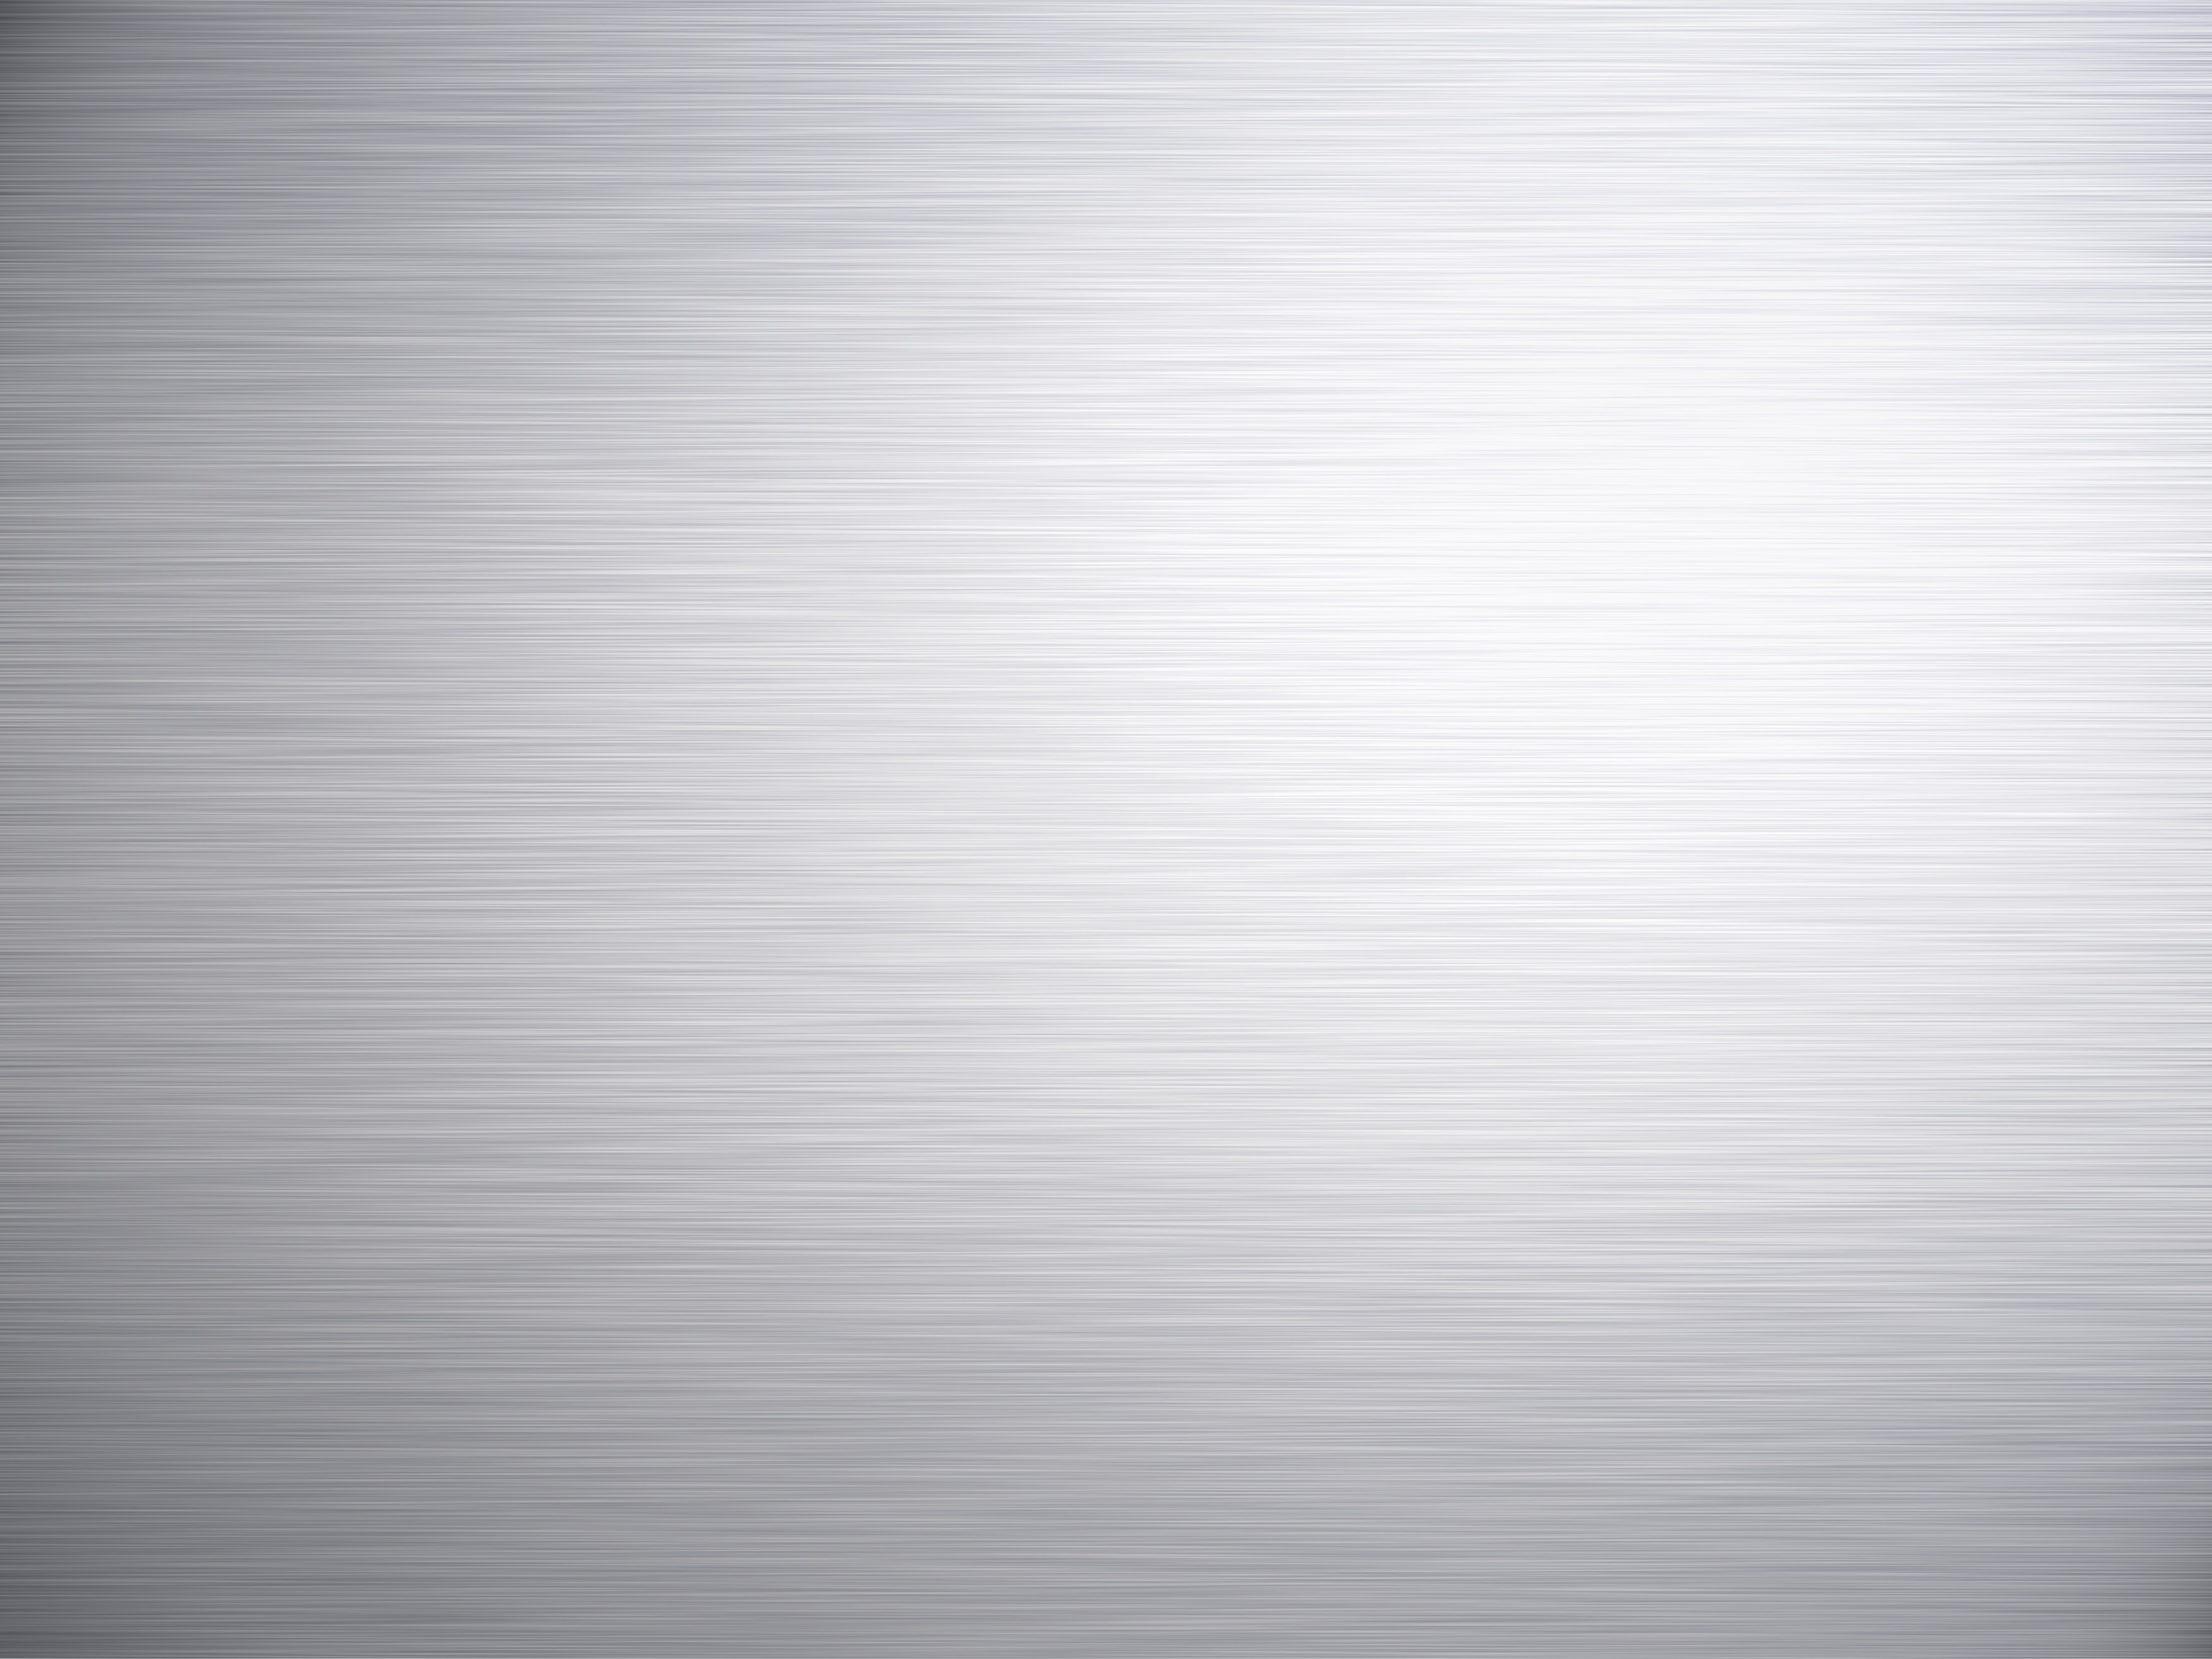 Brushed Metal Texture Steel Background